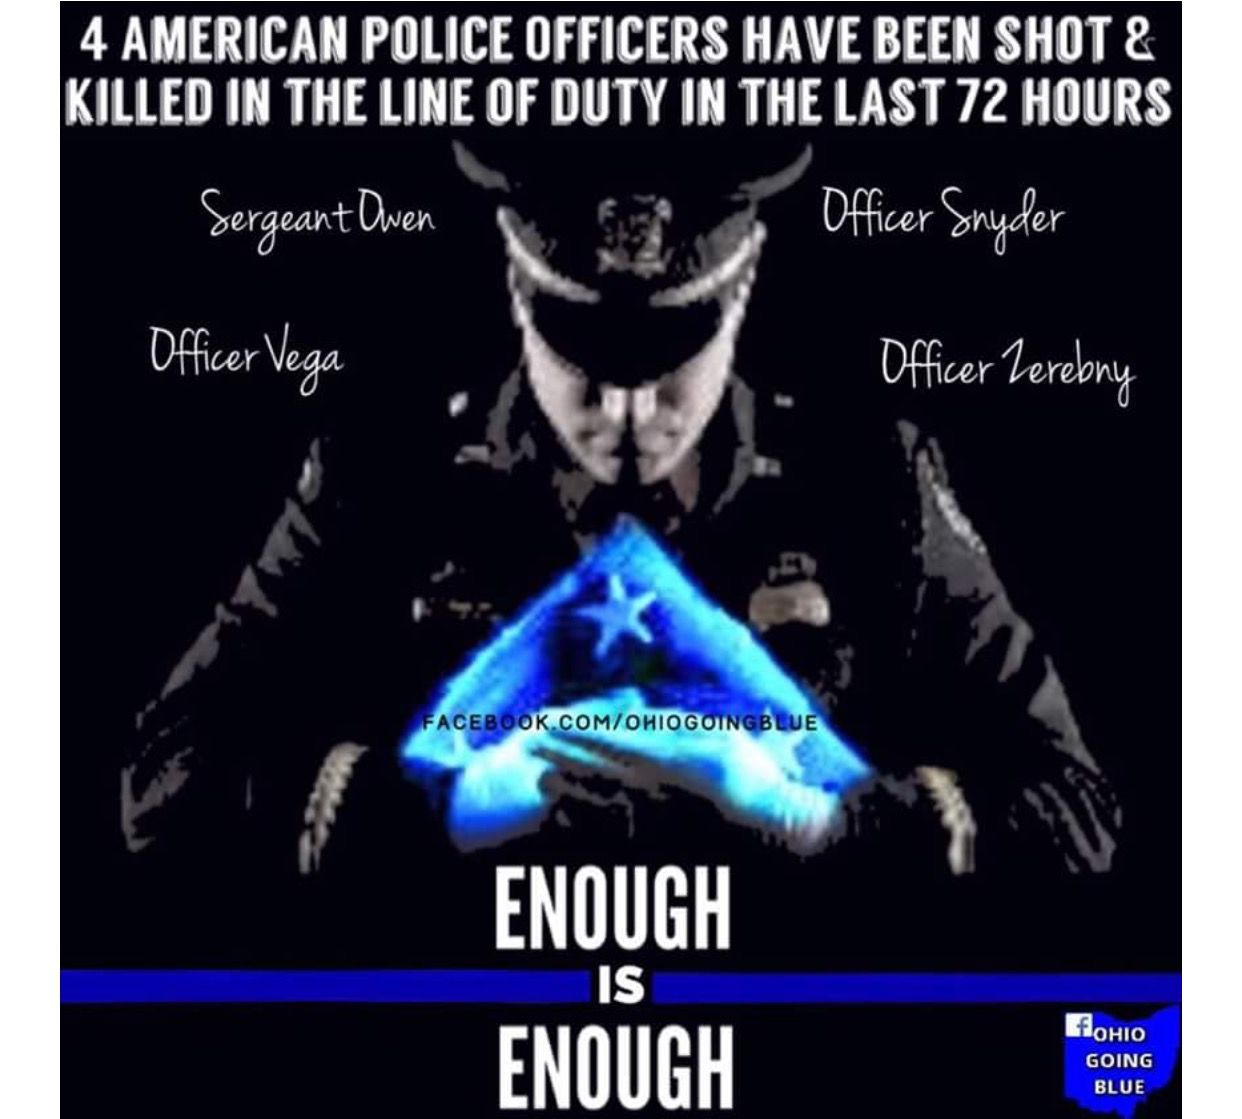 ENOUGH IS ENOUGH !!! Blue lives matter, Police, Law